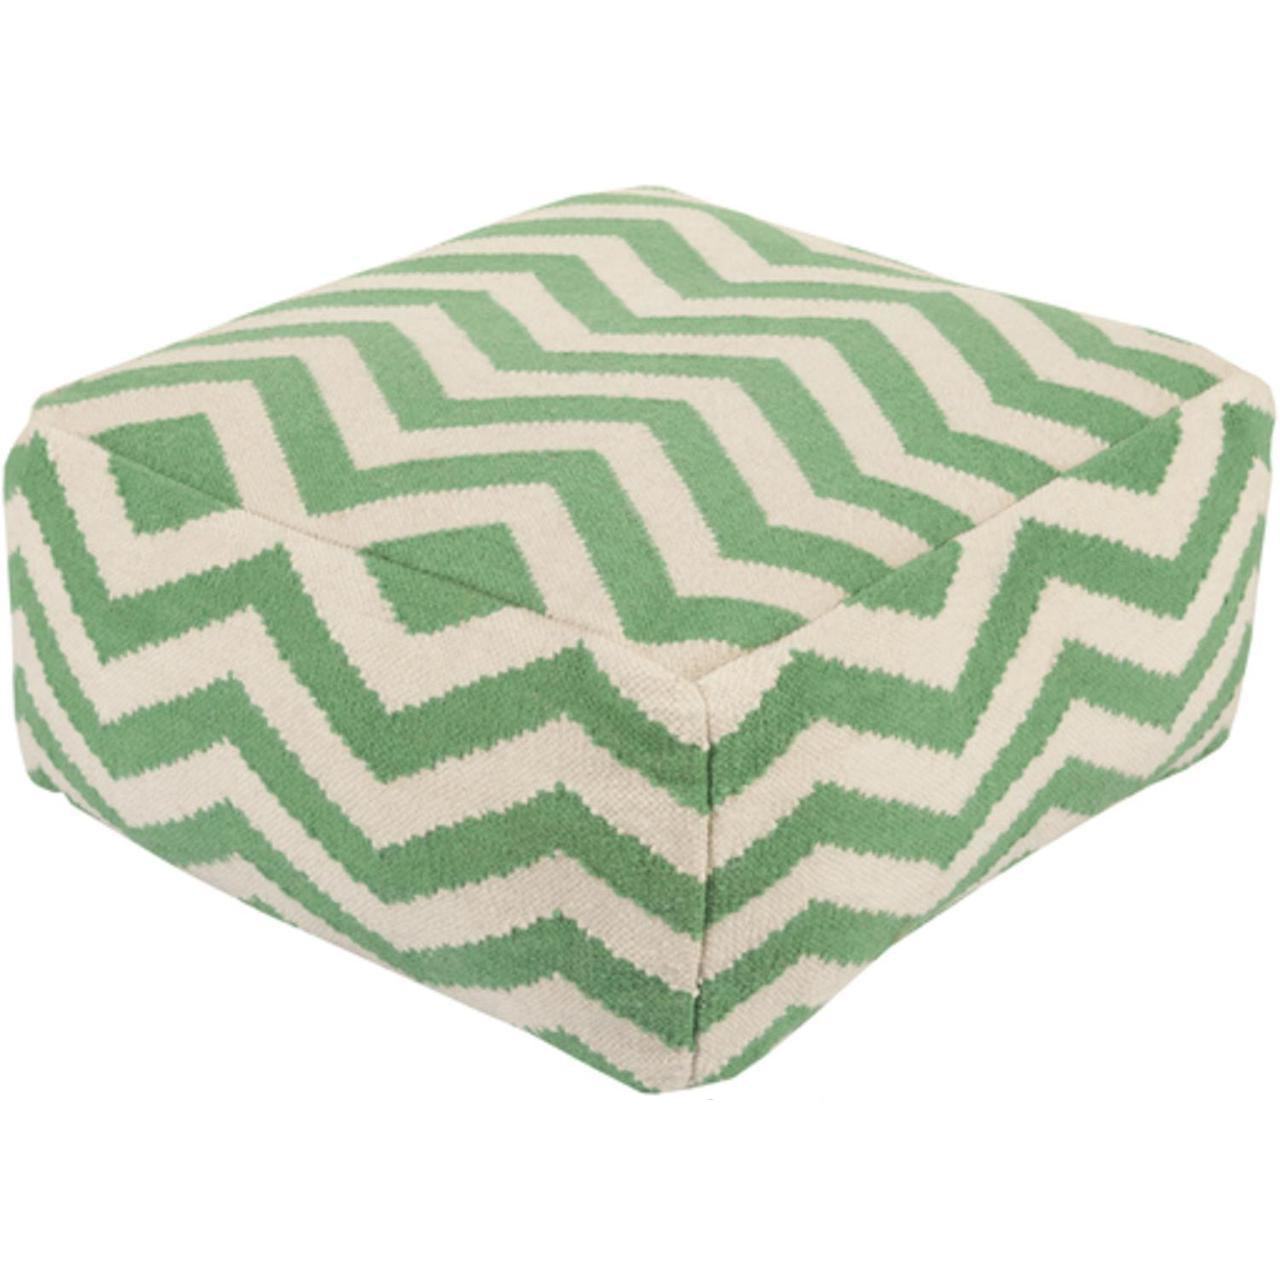 Fantastic 24 Emerald Green And Ivory Chevron Wool Rectangular Pouf Ottoman 30894610 Cjindustries Chair Design For Home Cjindustriesco